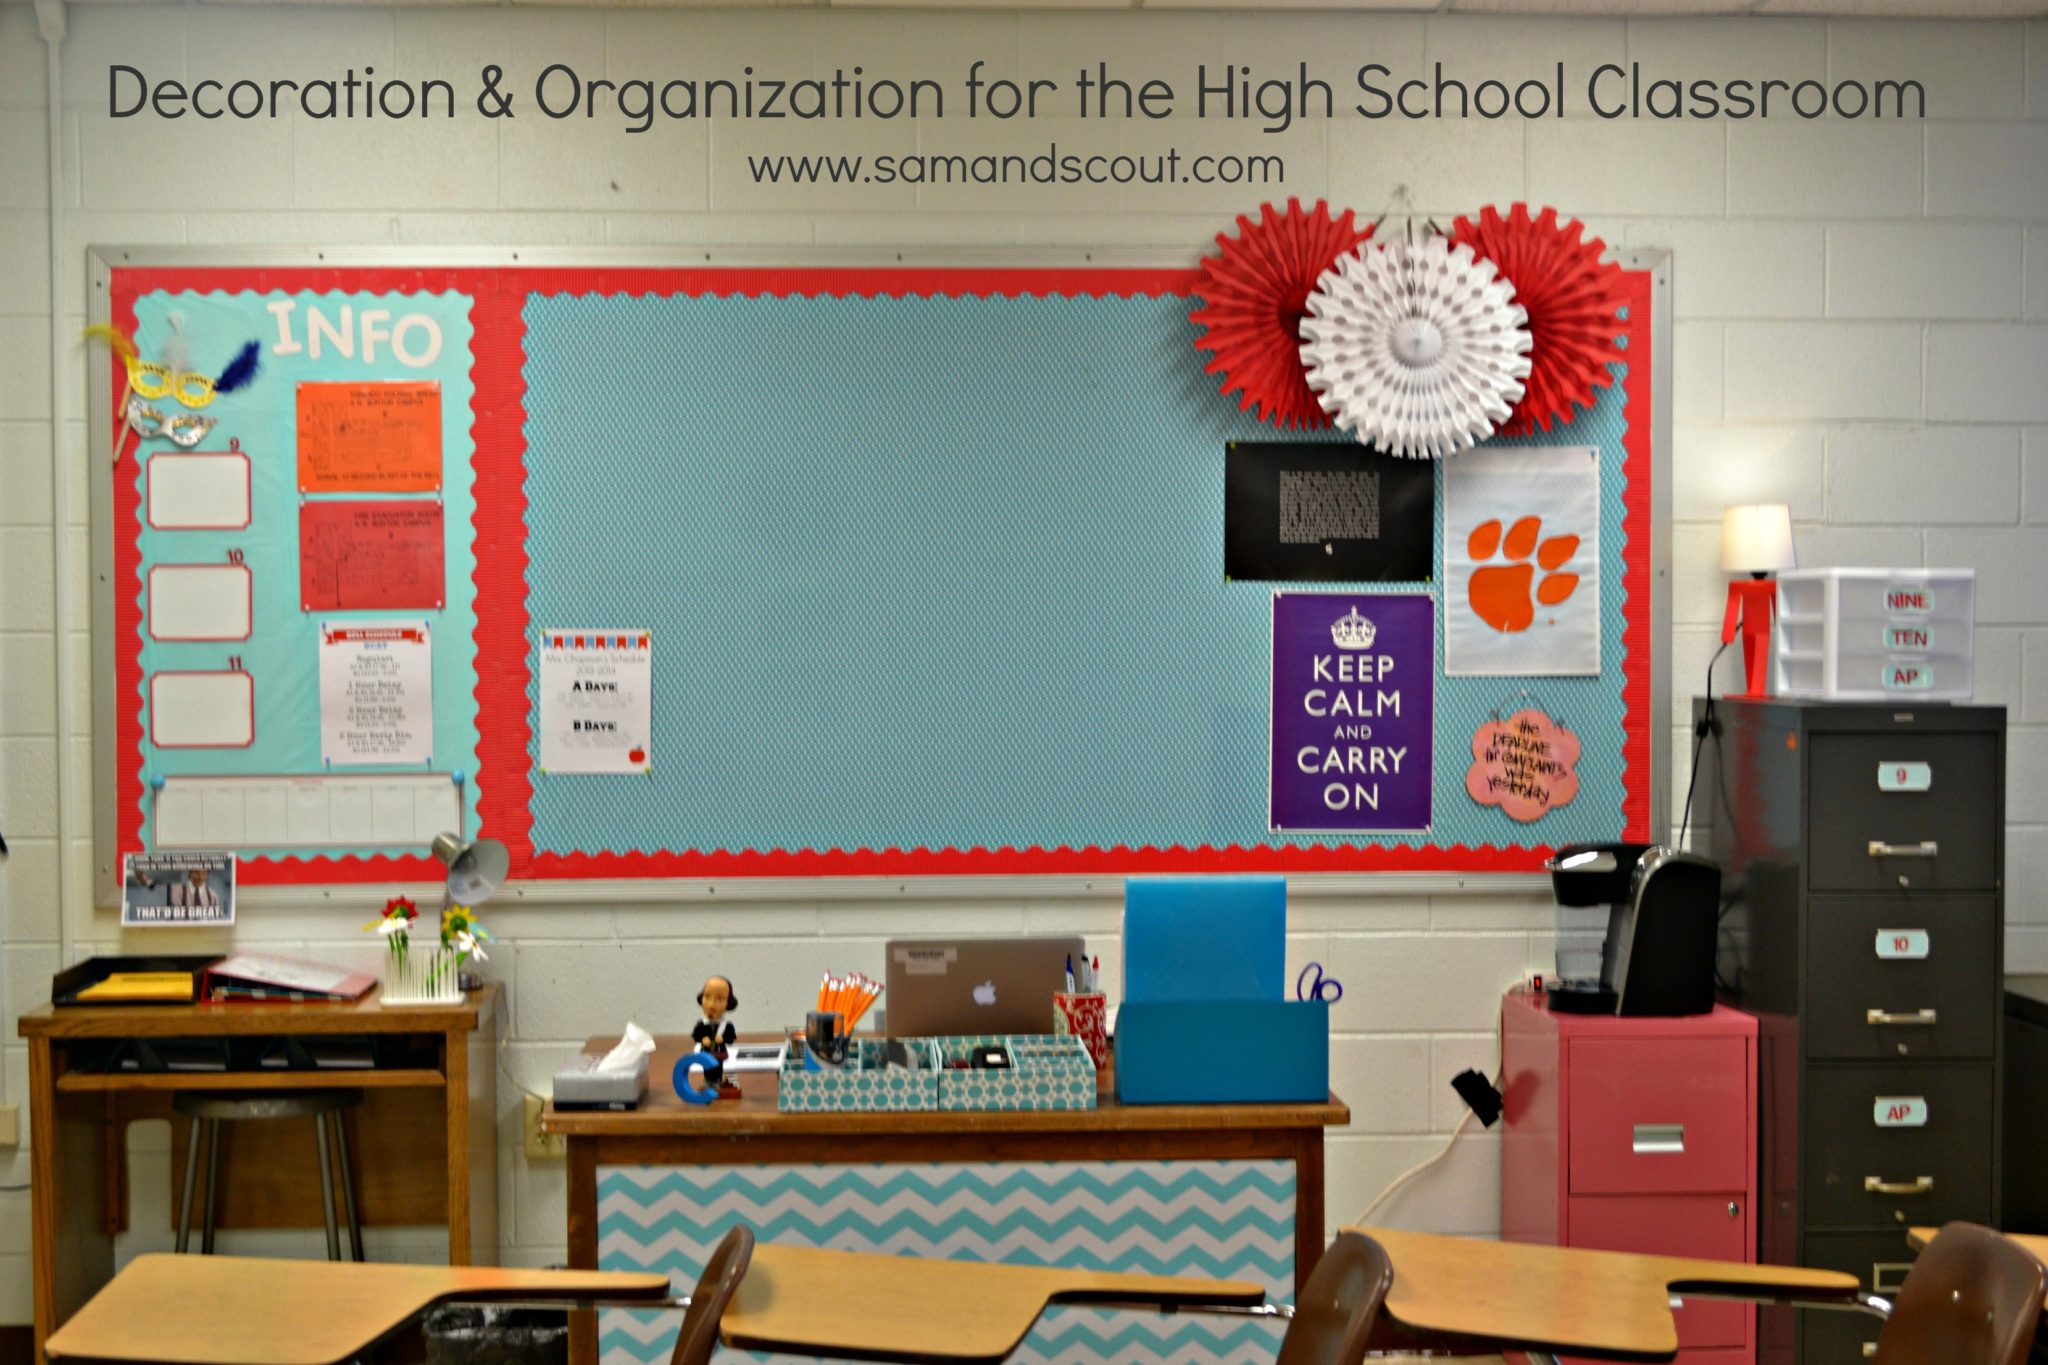 Classroom Ideas Decorating ~ Decoration organization for the high school classroom